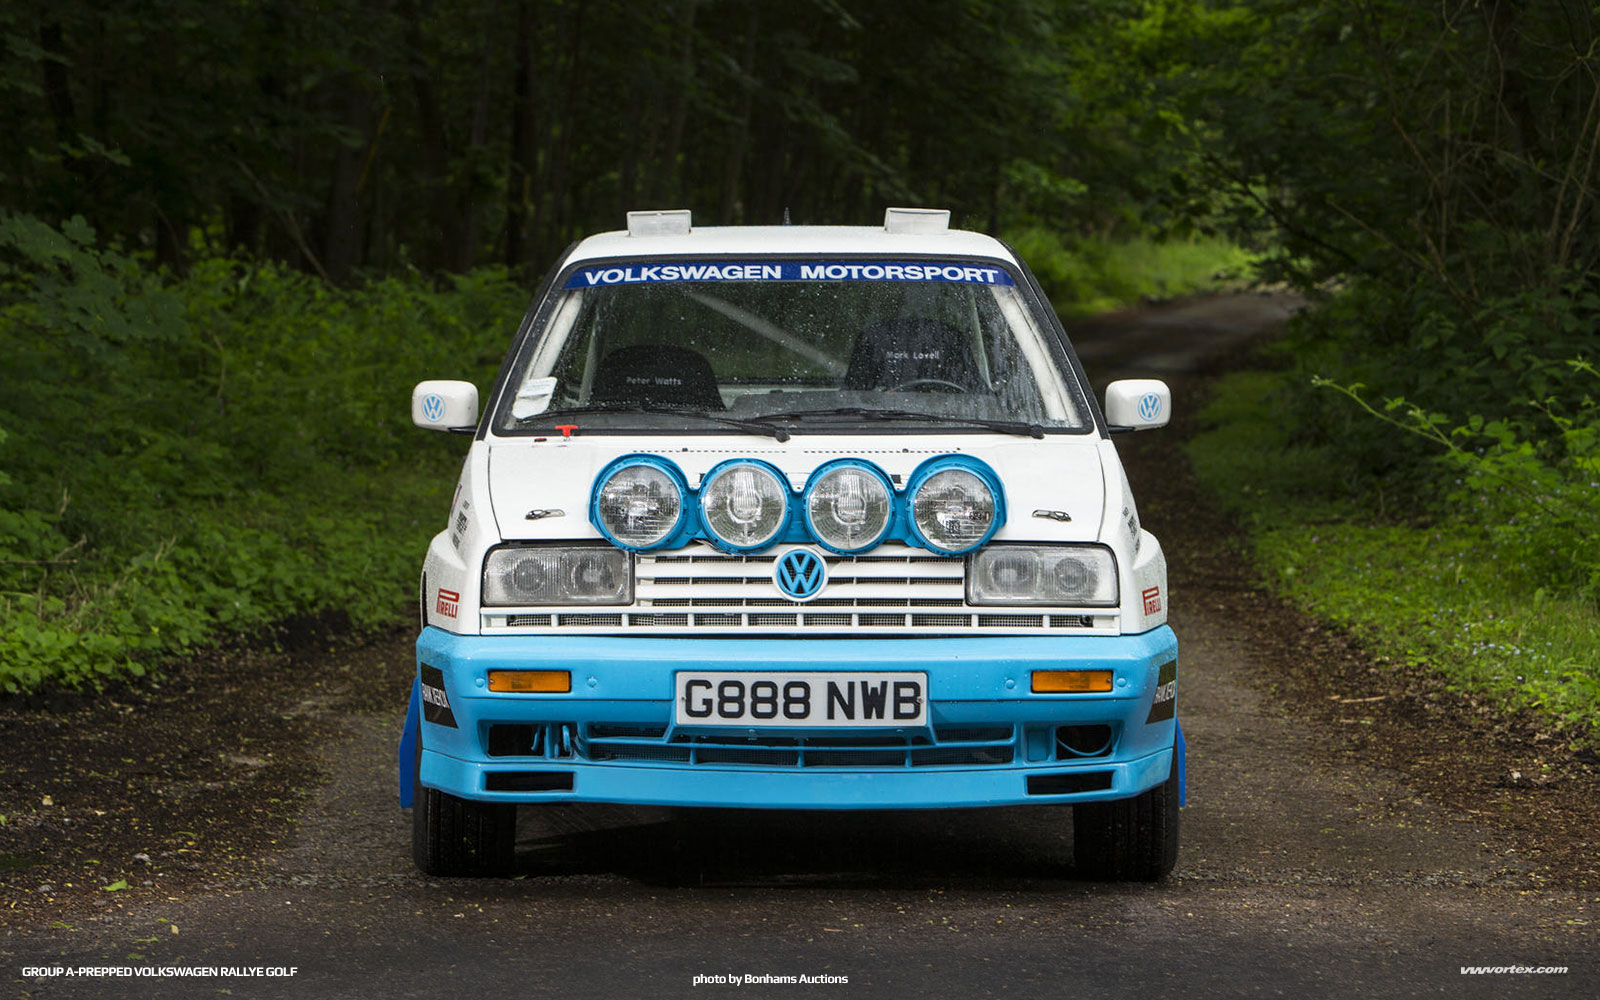 Volkswagen Rallye Golf Group A 3 600x375